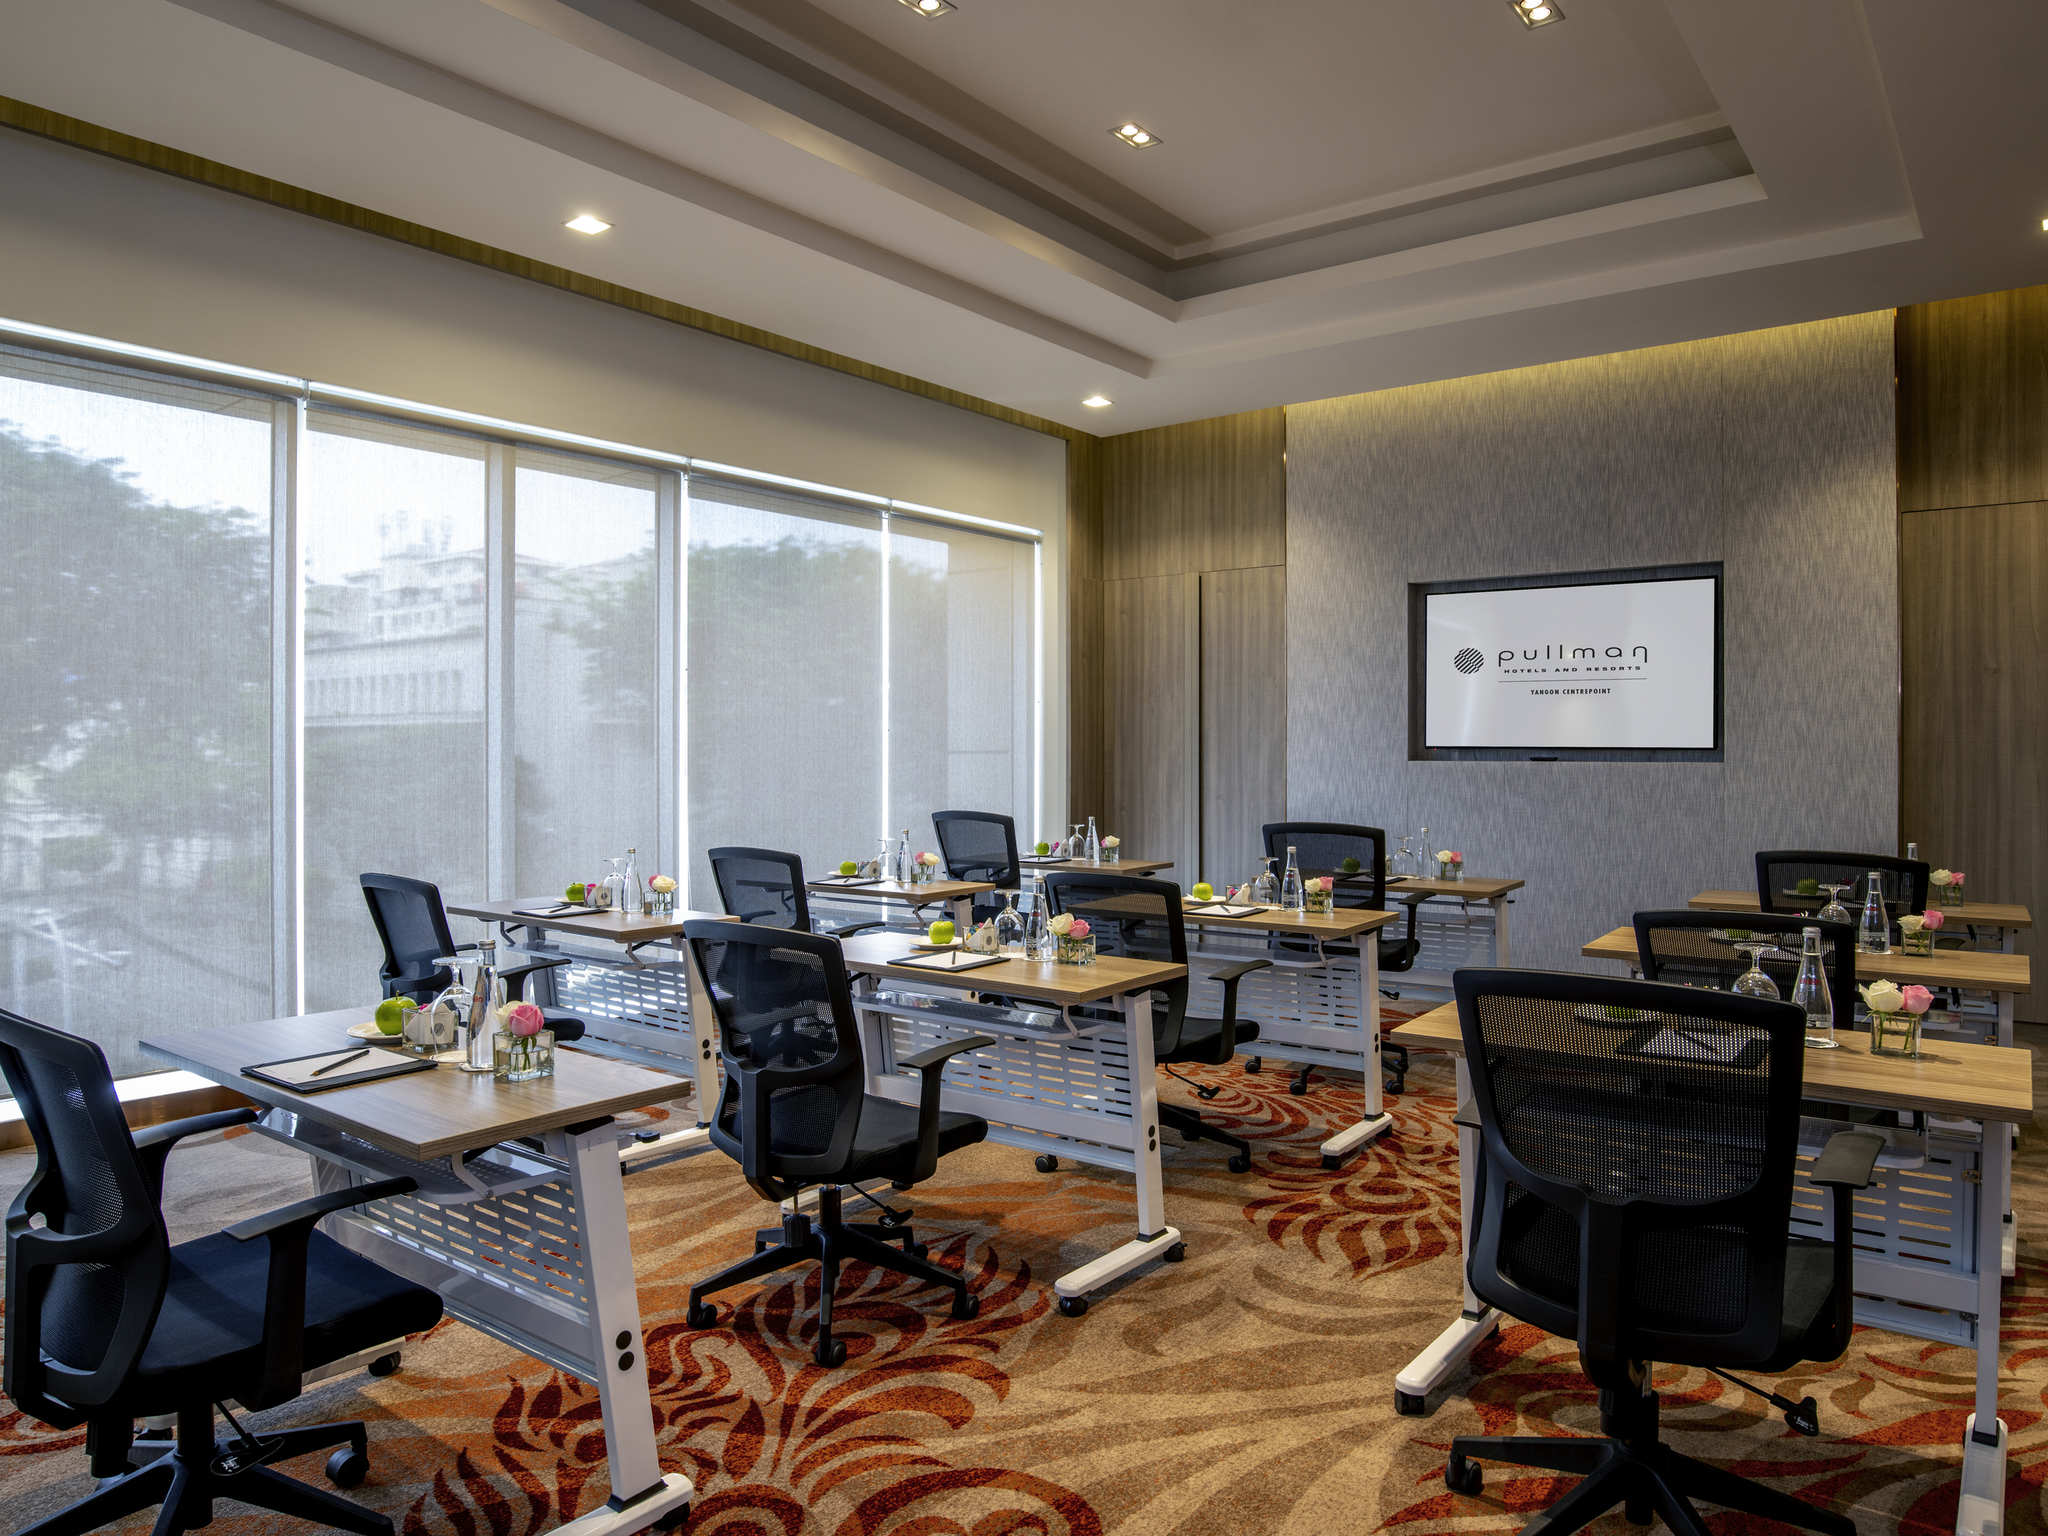 office chair yangon covers for folding chairs amazon hotel in pullman centrepoint meetings and events